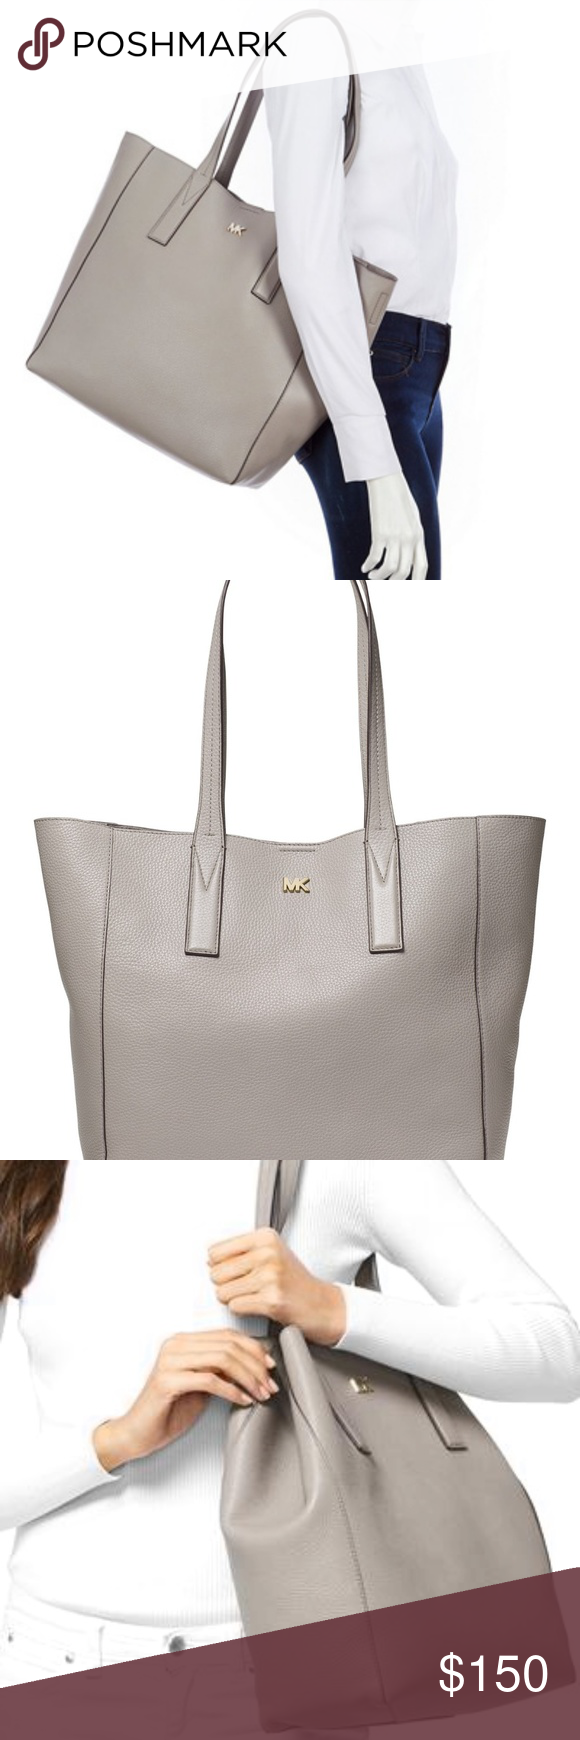 d3f08c0c5e0b Michael Kors Junie Large Tote Pearl Grey NWT Brand new with tags Junie Large  Pebbled Leather